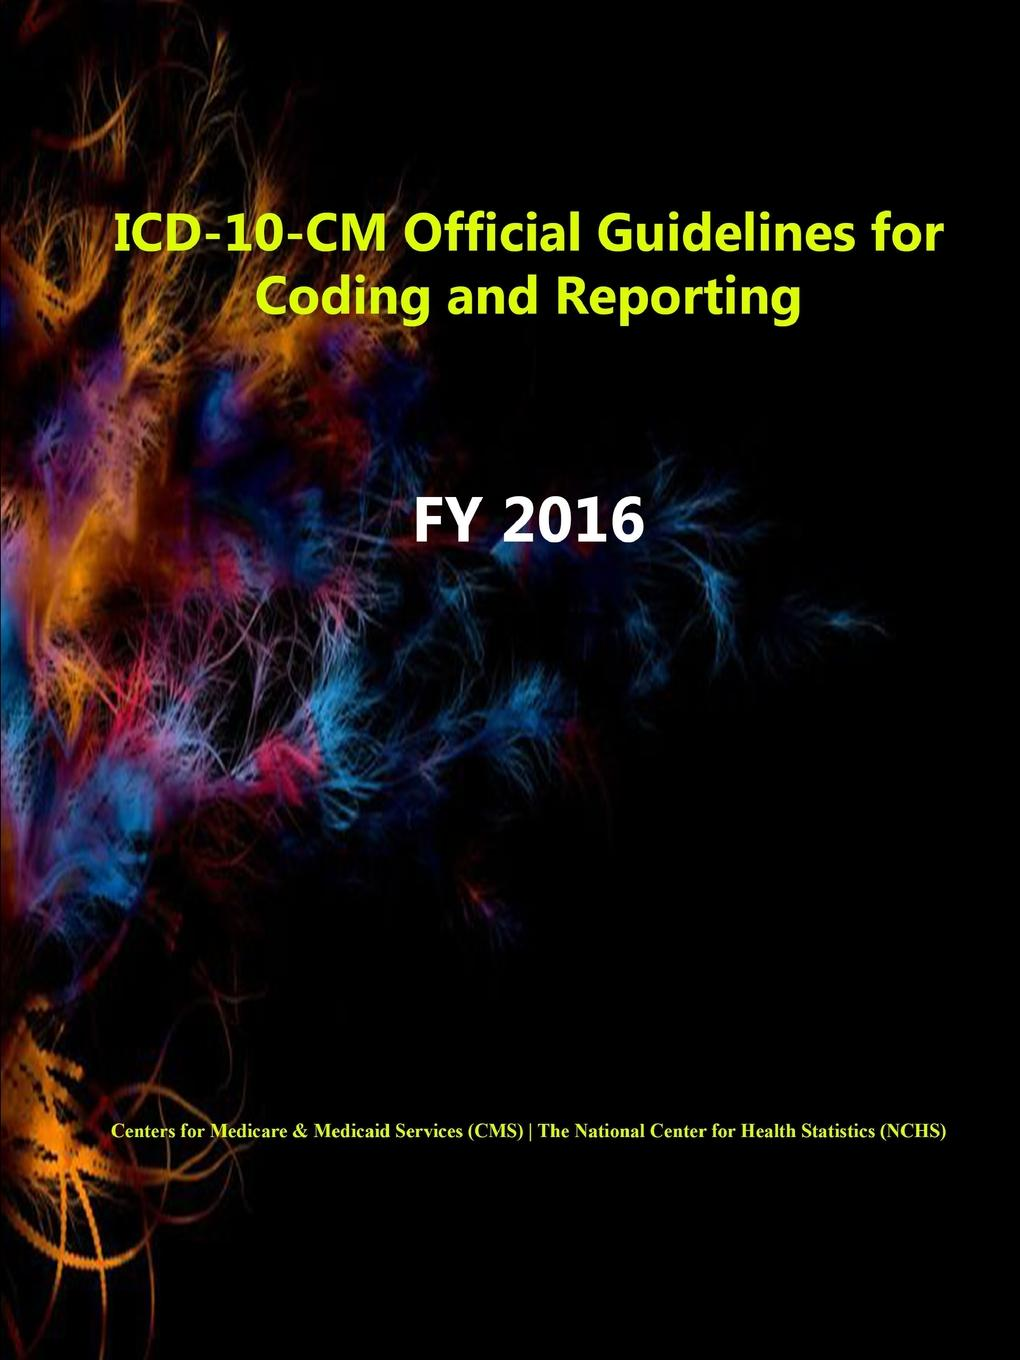 Centers for Medicare & Medicaid S (CMS), The National Center for Health S (NCHS) ICD-10-CM Official Guidelines for Coding and Reporting - FY 2016 sony icd px333m